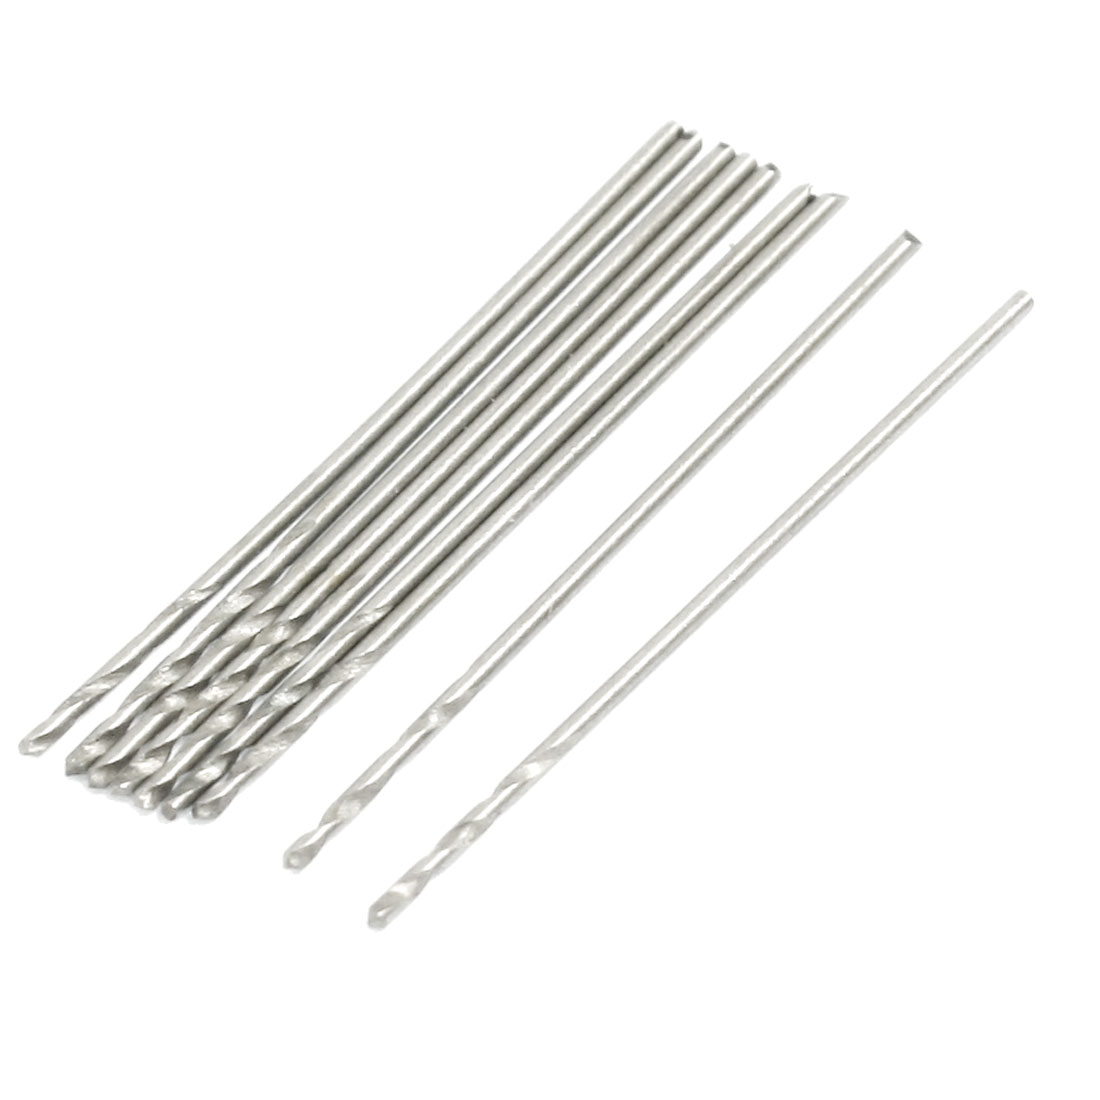 10 x 0.8mm Dia HSS Straight Shank Twist Drill Bits 30mm Long